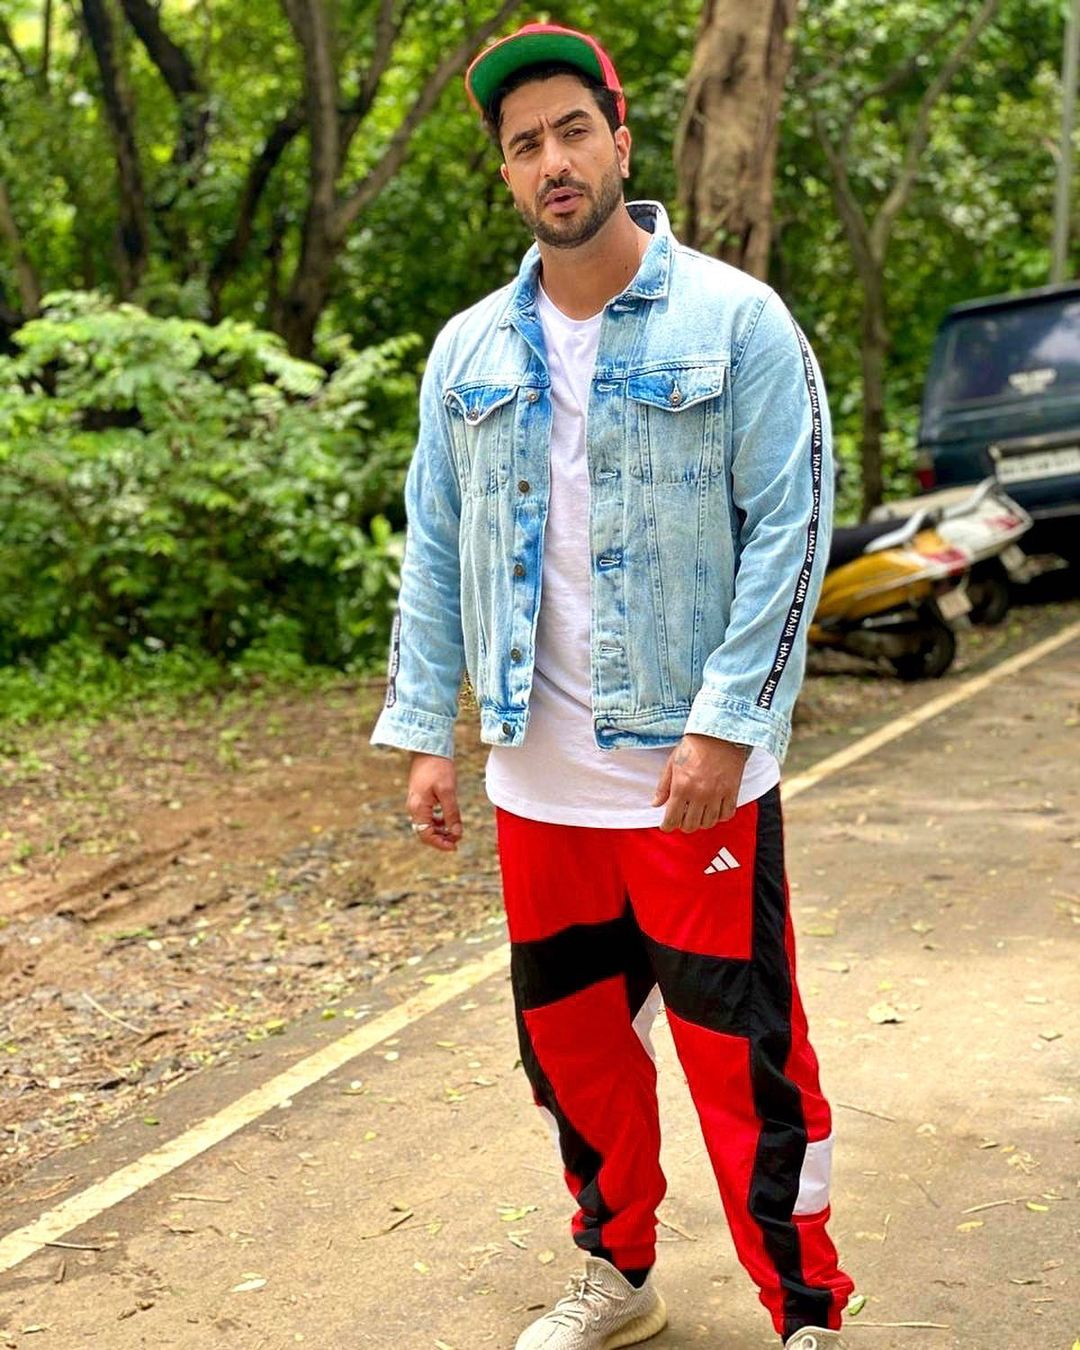 Aly Goni, Nishant Singh Malkani, Harsh Rajput's Denim Fashion Sets Instagram On Fire; See Pics 6